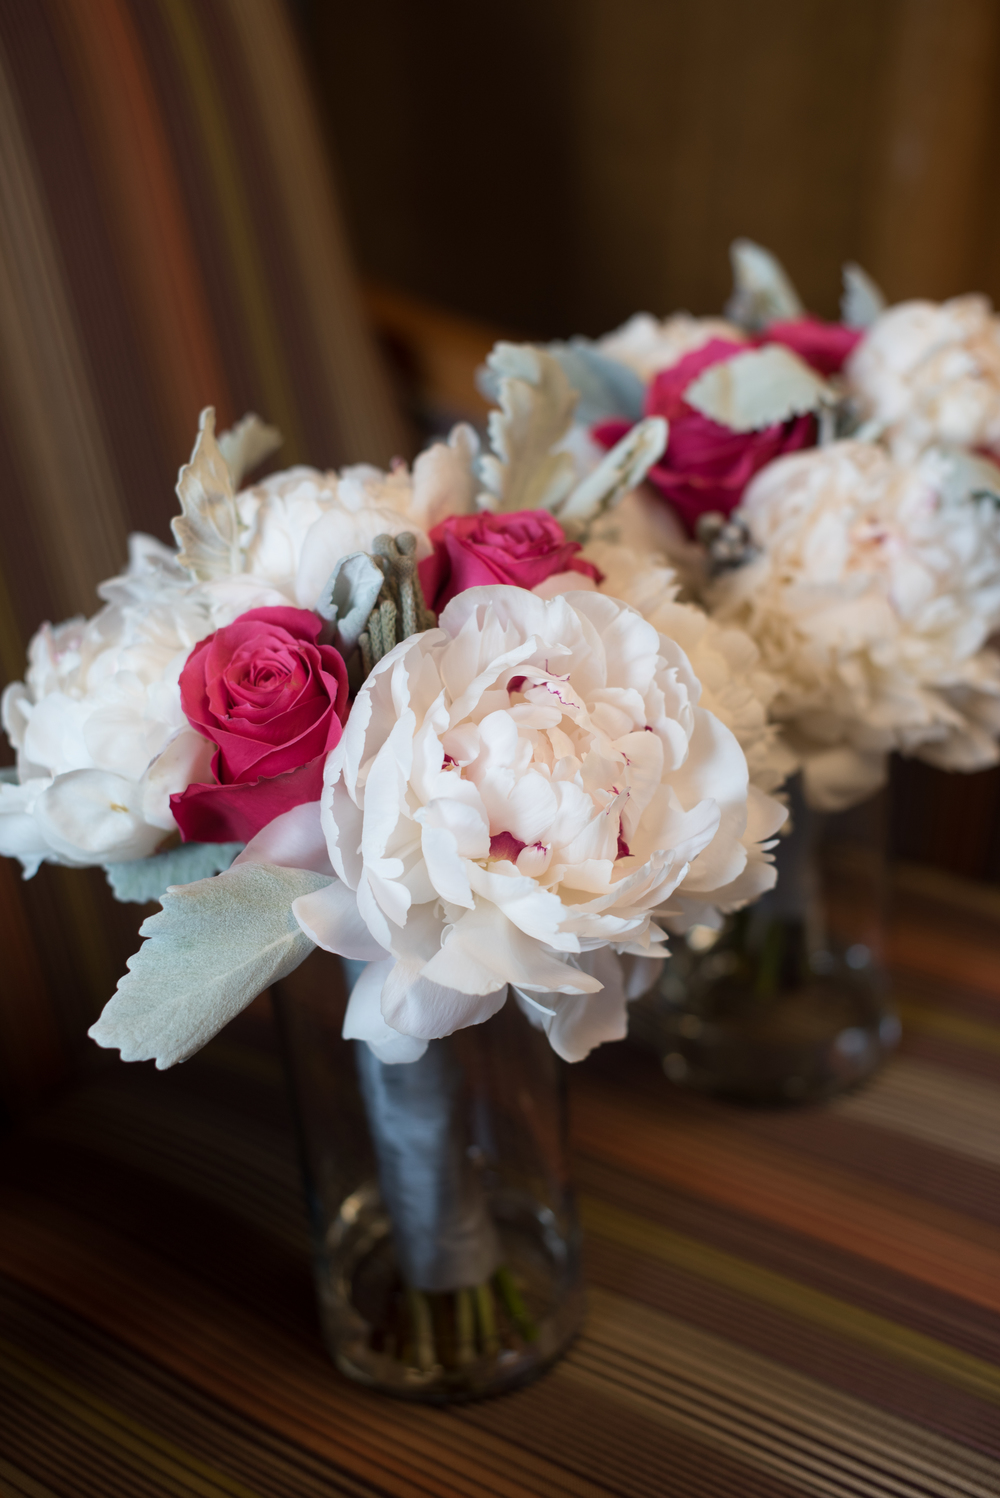 Sublime Stems | C2 Photography